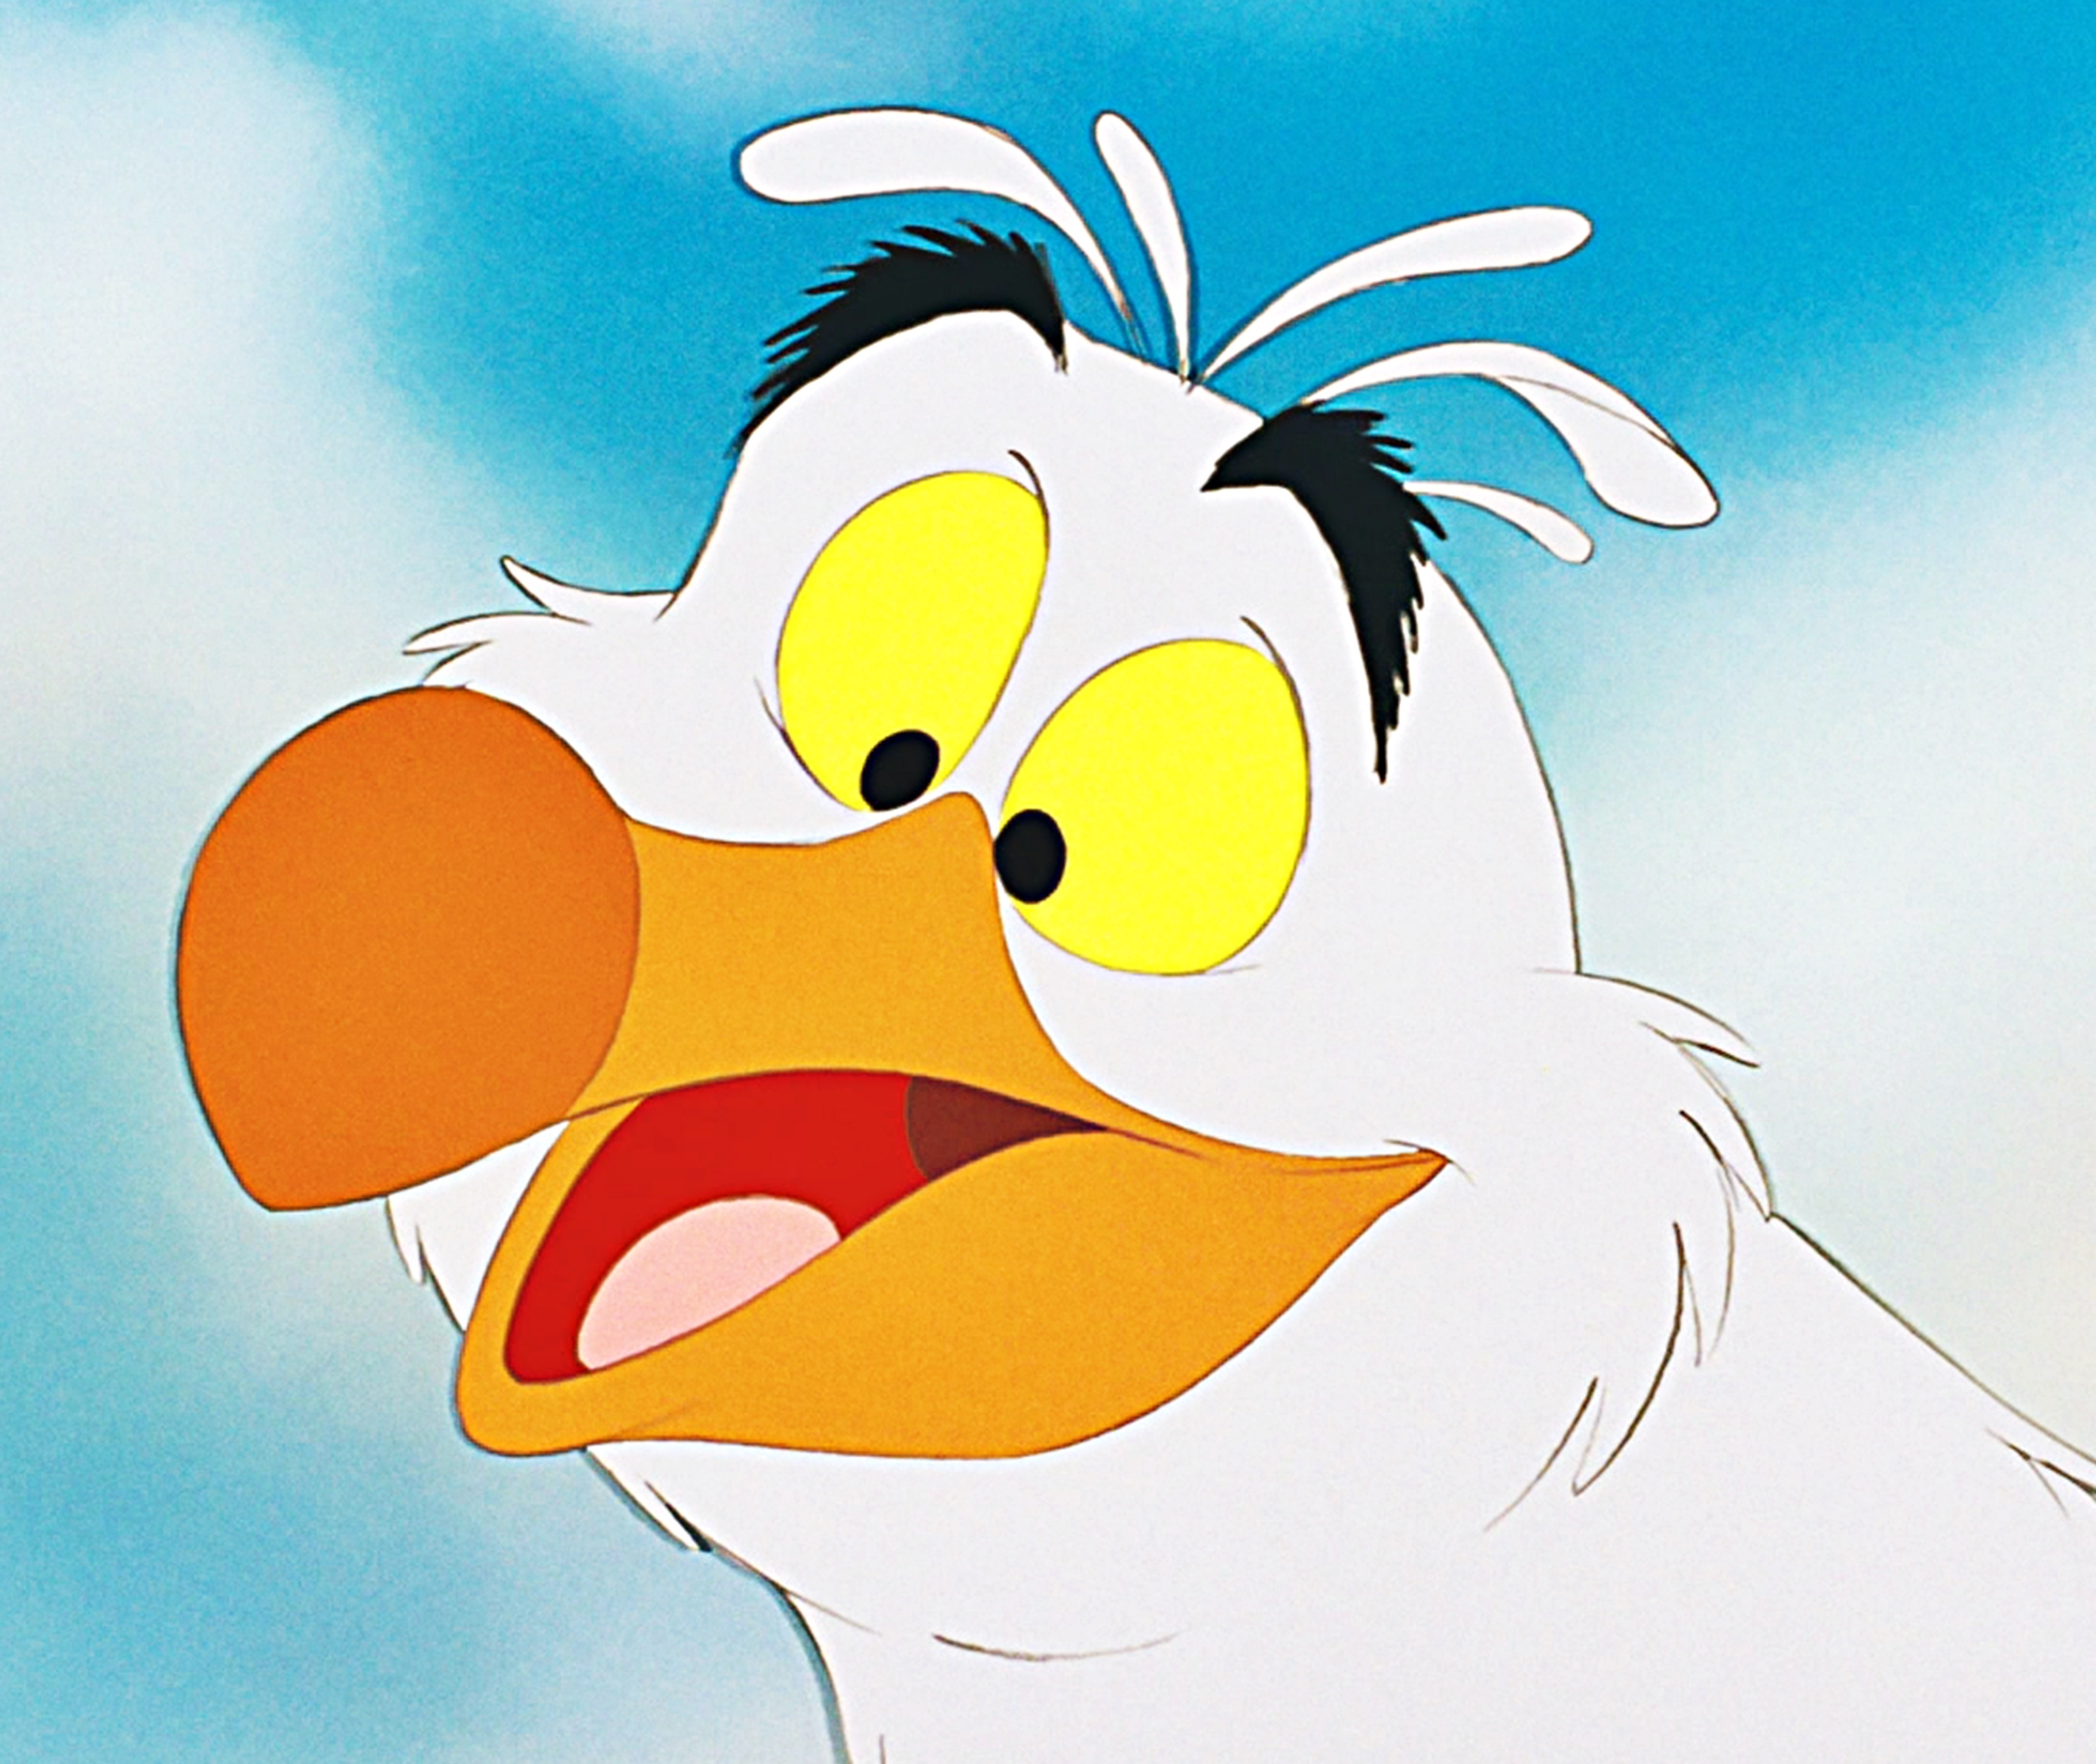 Battle of the Disney Characters - Best Character: The